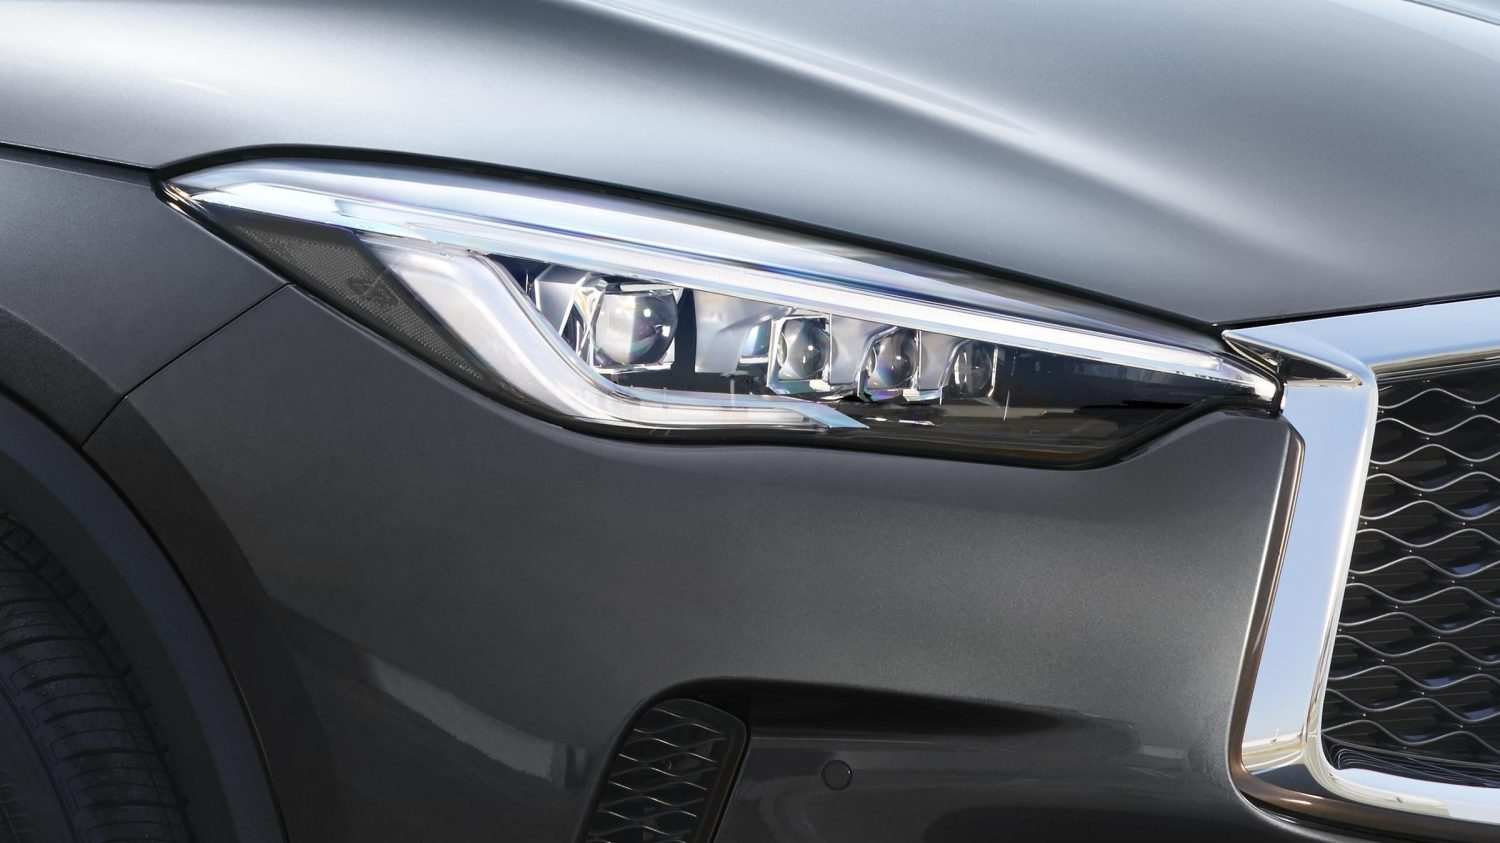 2019 INFINITI QX50 Luxury Crossover Adaptive Lighting